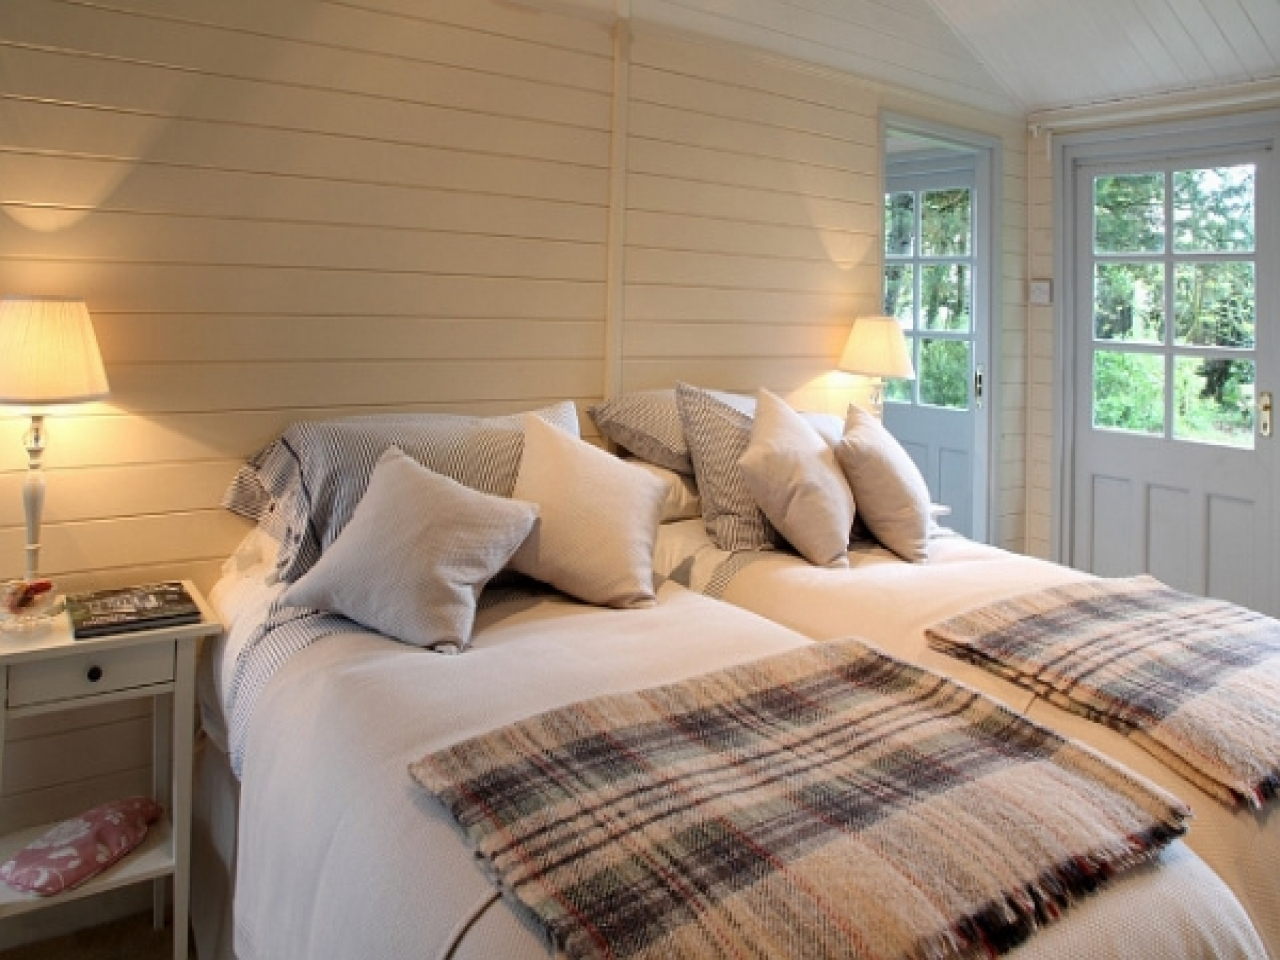 Beach House Bedrooms Designs Small Beach House Bedroom ...